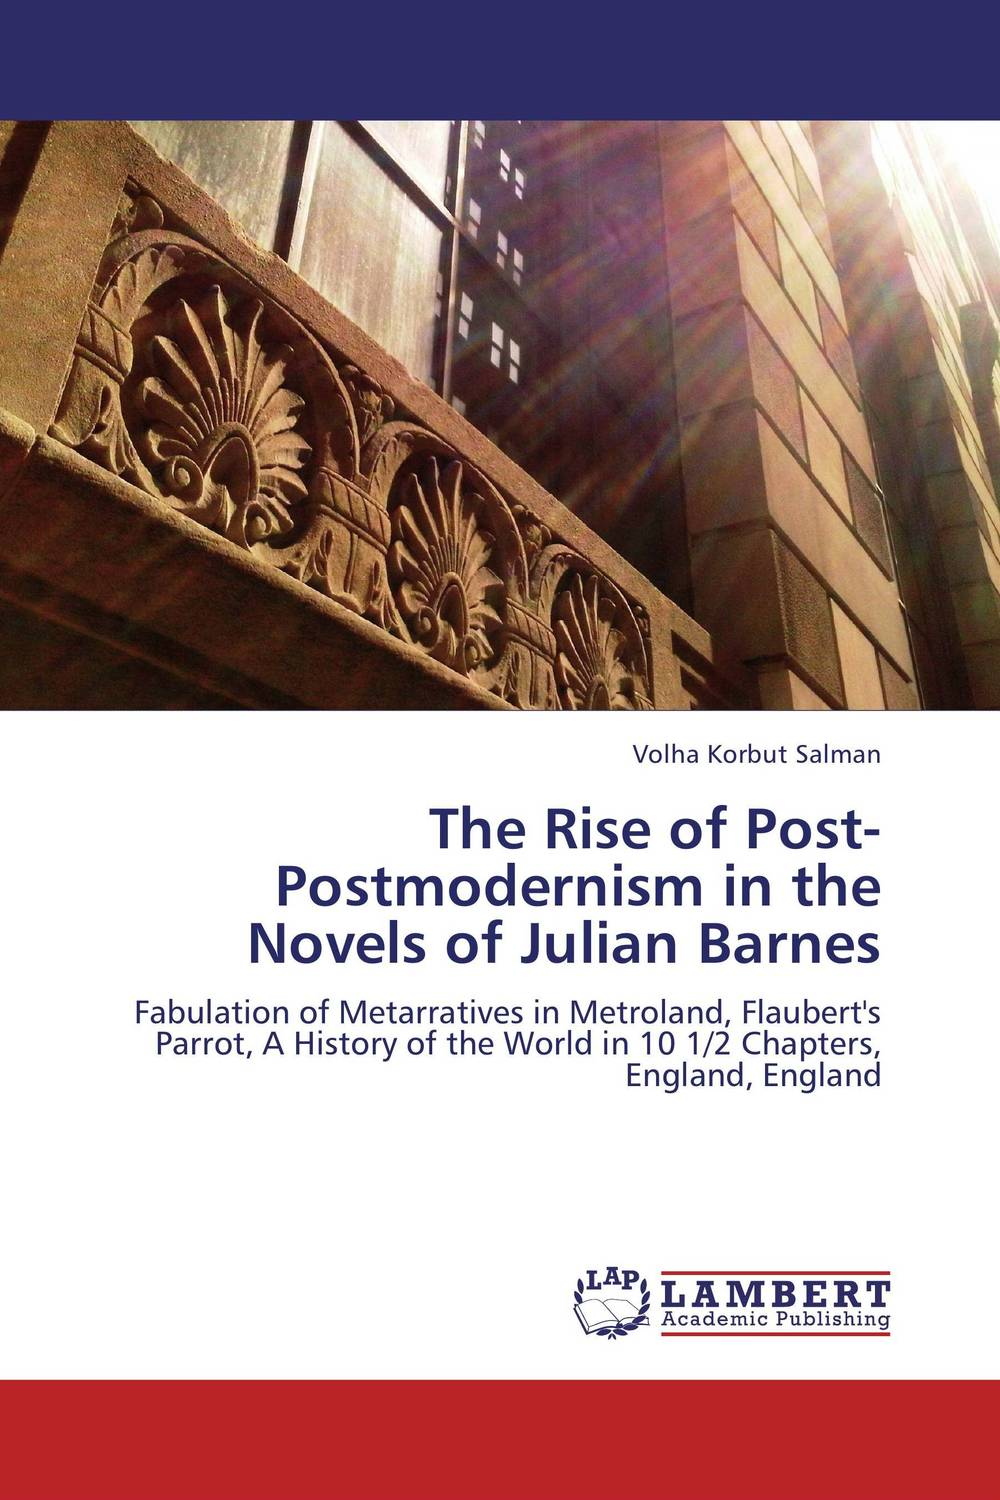 The Rise of Post-Postmodernism in the Novels of Julian Barnes sharma r the rise and fall of nations ten rules of change in the post crisis world